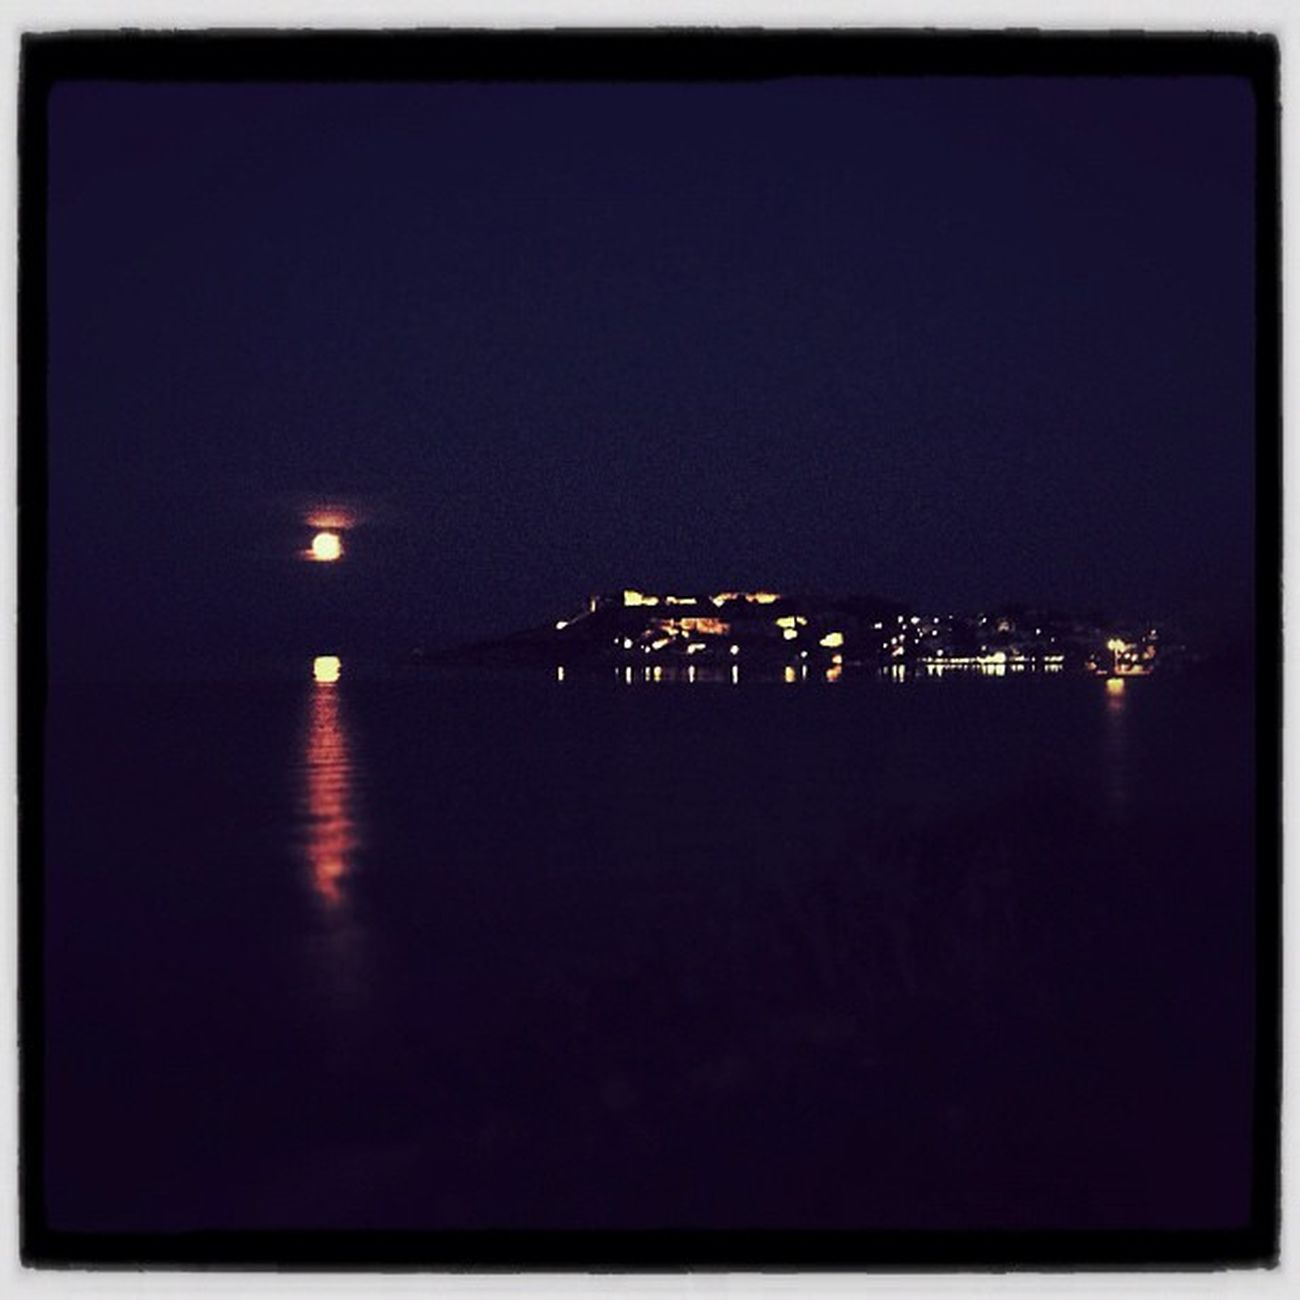 Full moon rising Night IPhone IPhoneography Moon Fullmoon Greece Igers Ubiquography Instalovers_gr